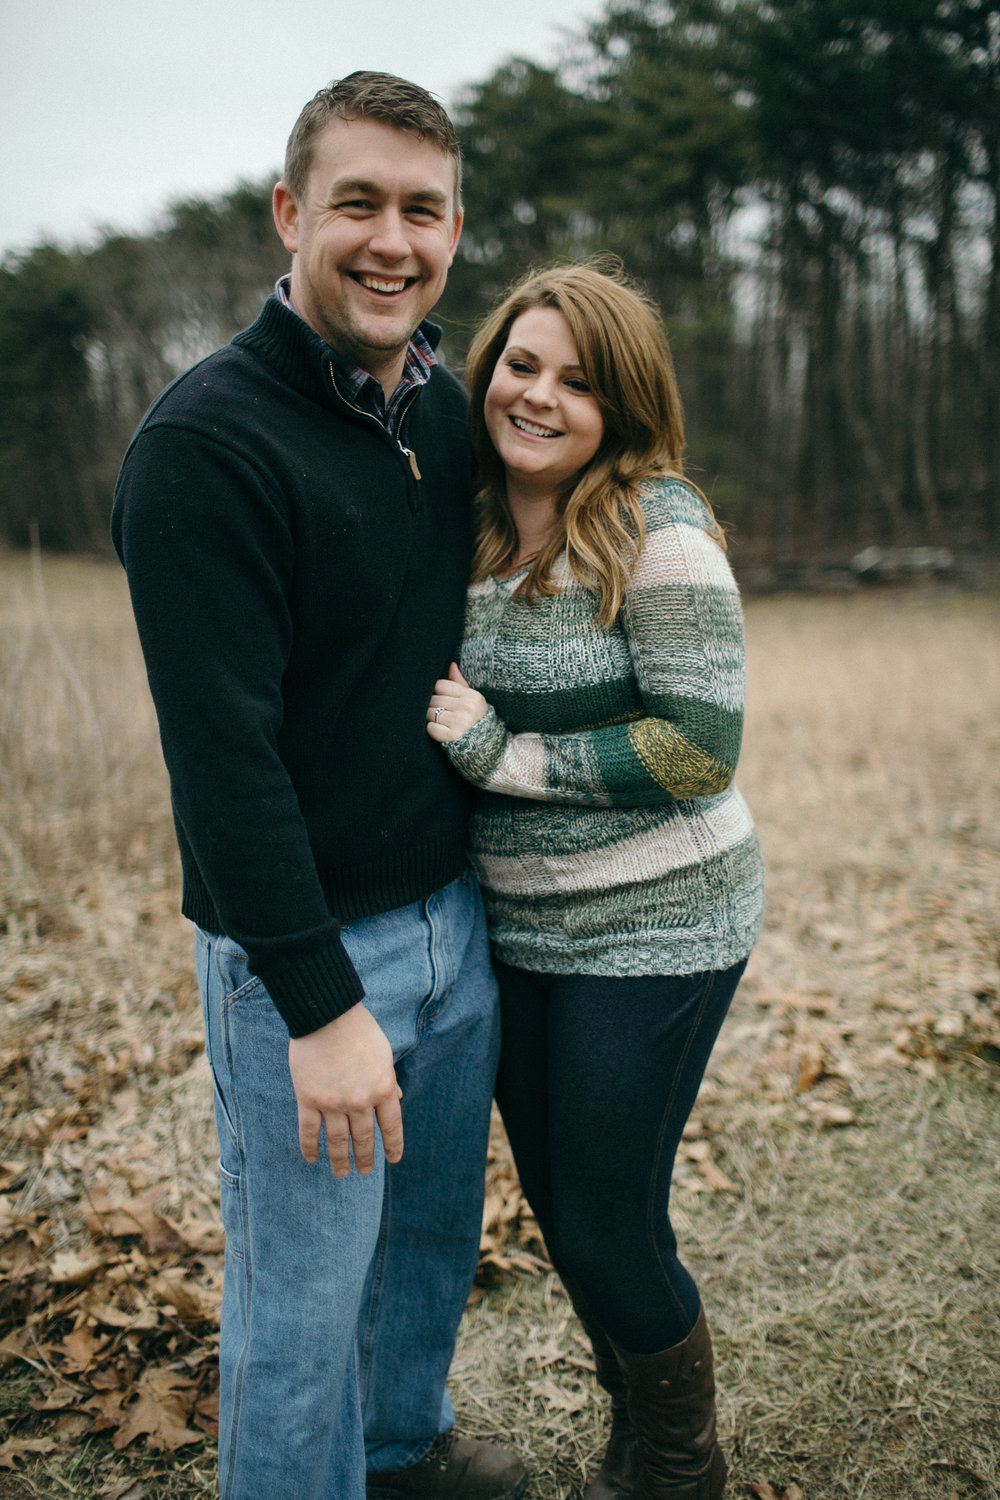 jake and krysti dayton ohio engagement photographer sarah rose hocking hills